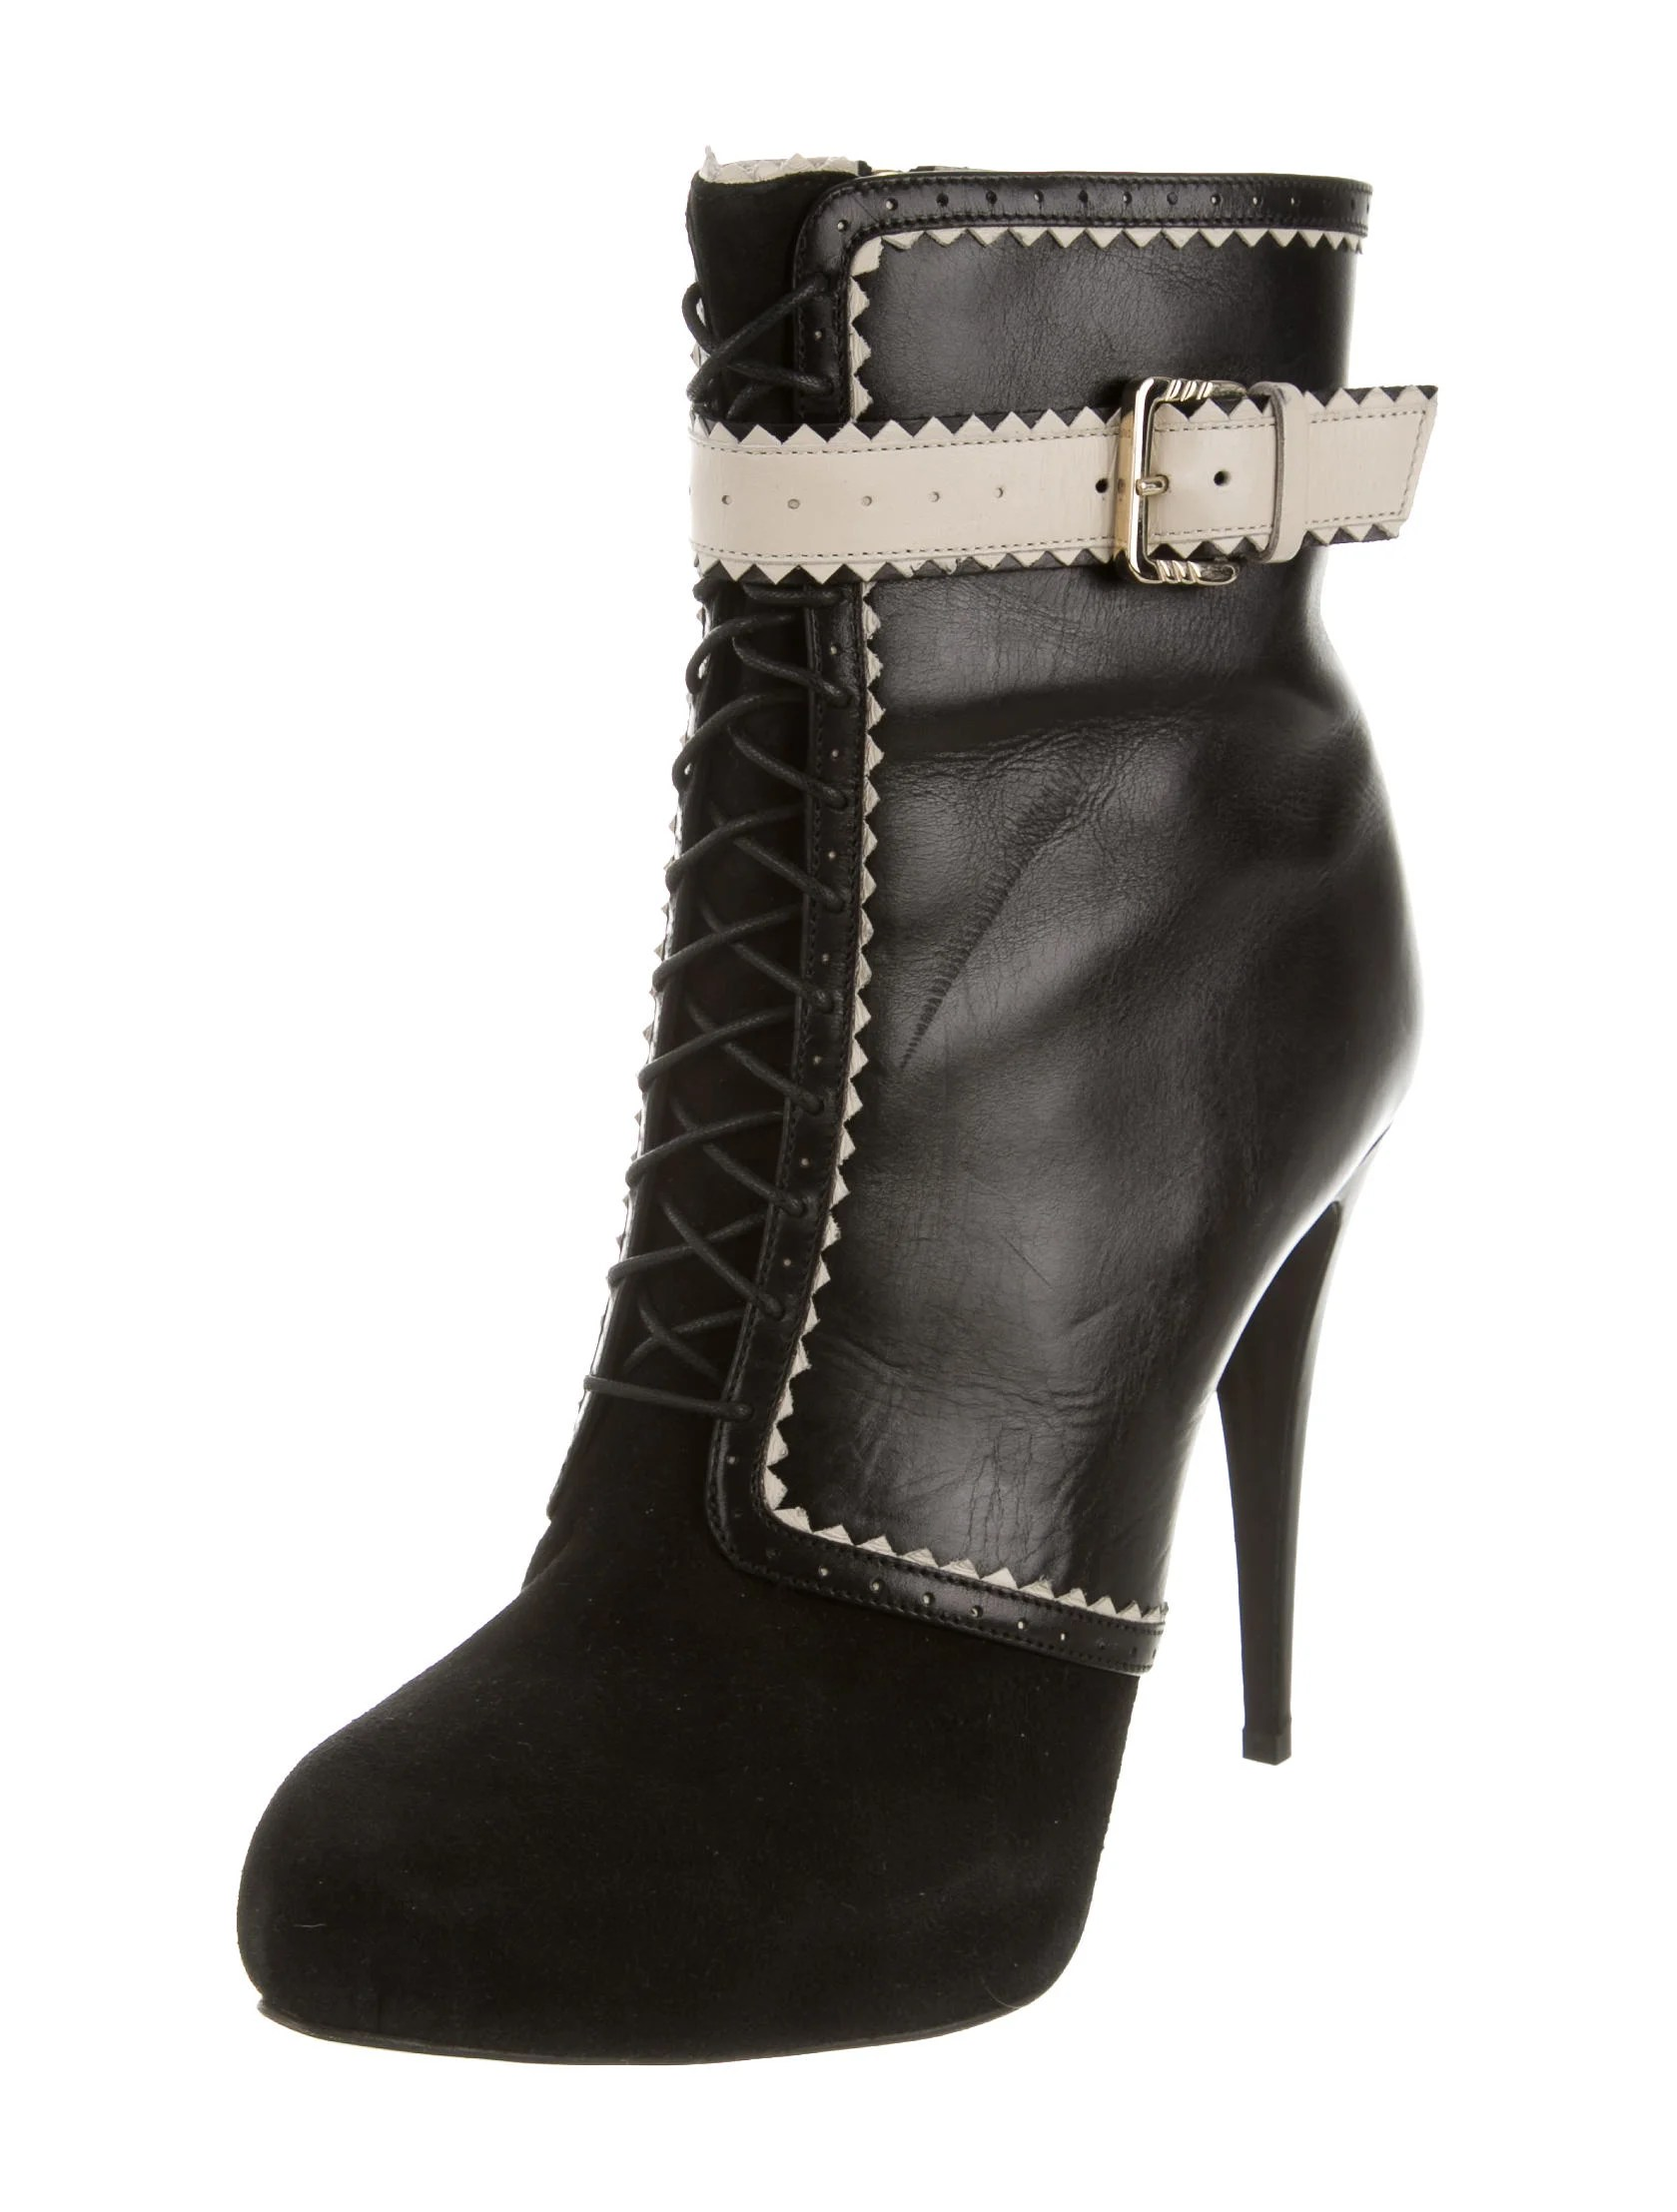 Jason Wu Leather Round Toe Booties Shoes Jas22484